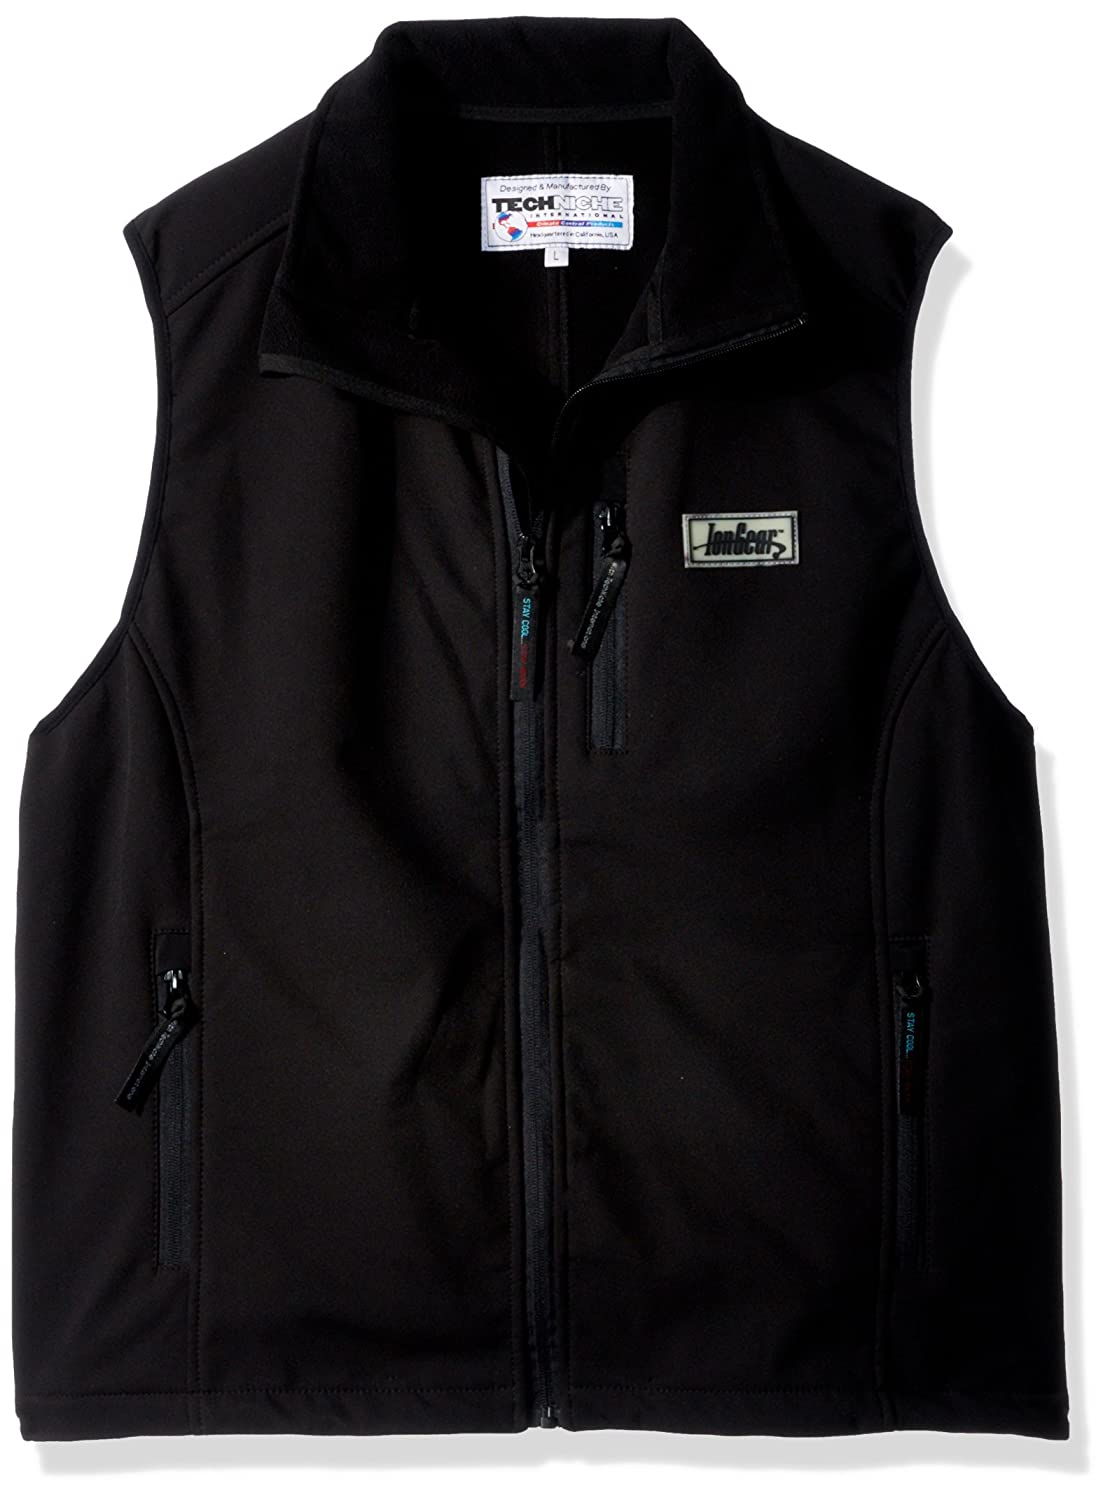 IonGear 5627 Battery Powered Heated Vest, Large